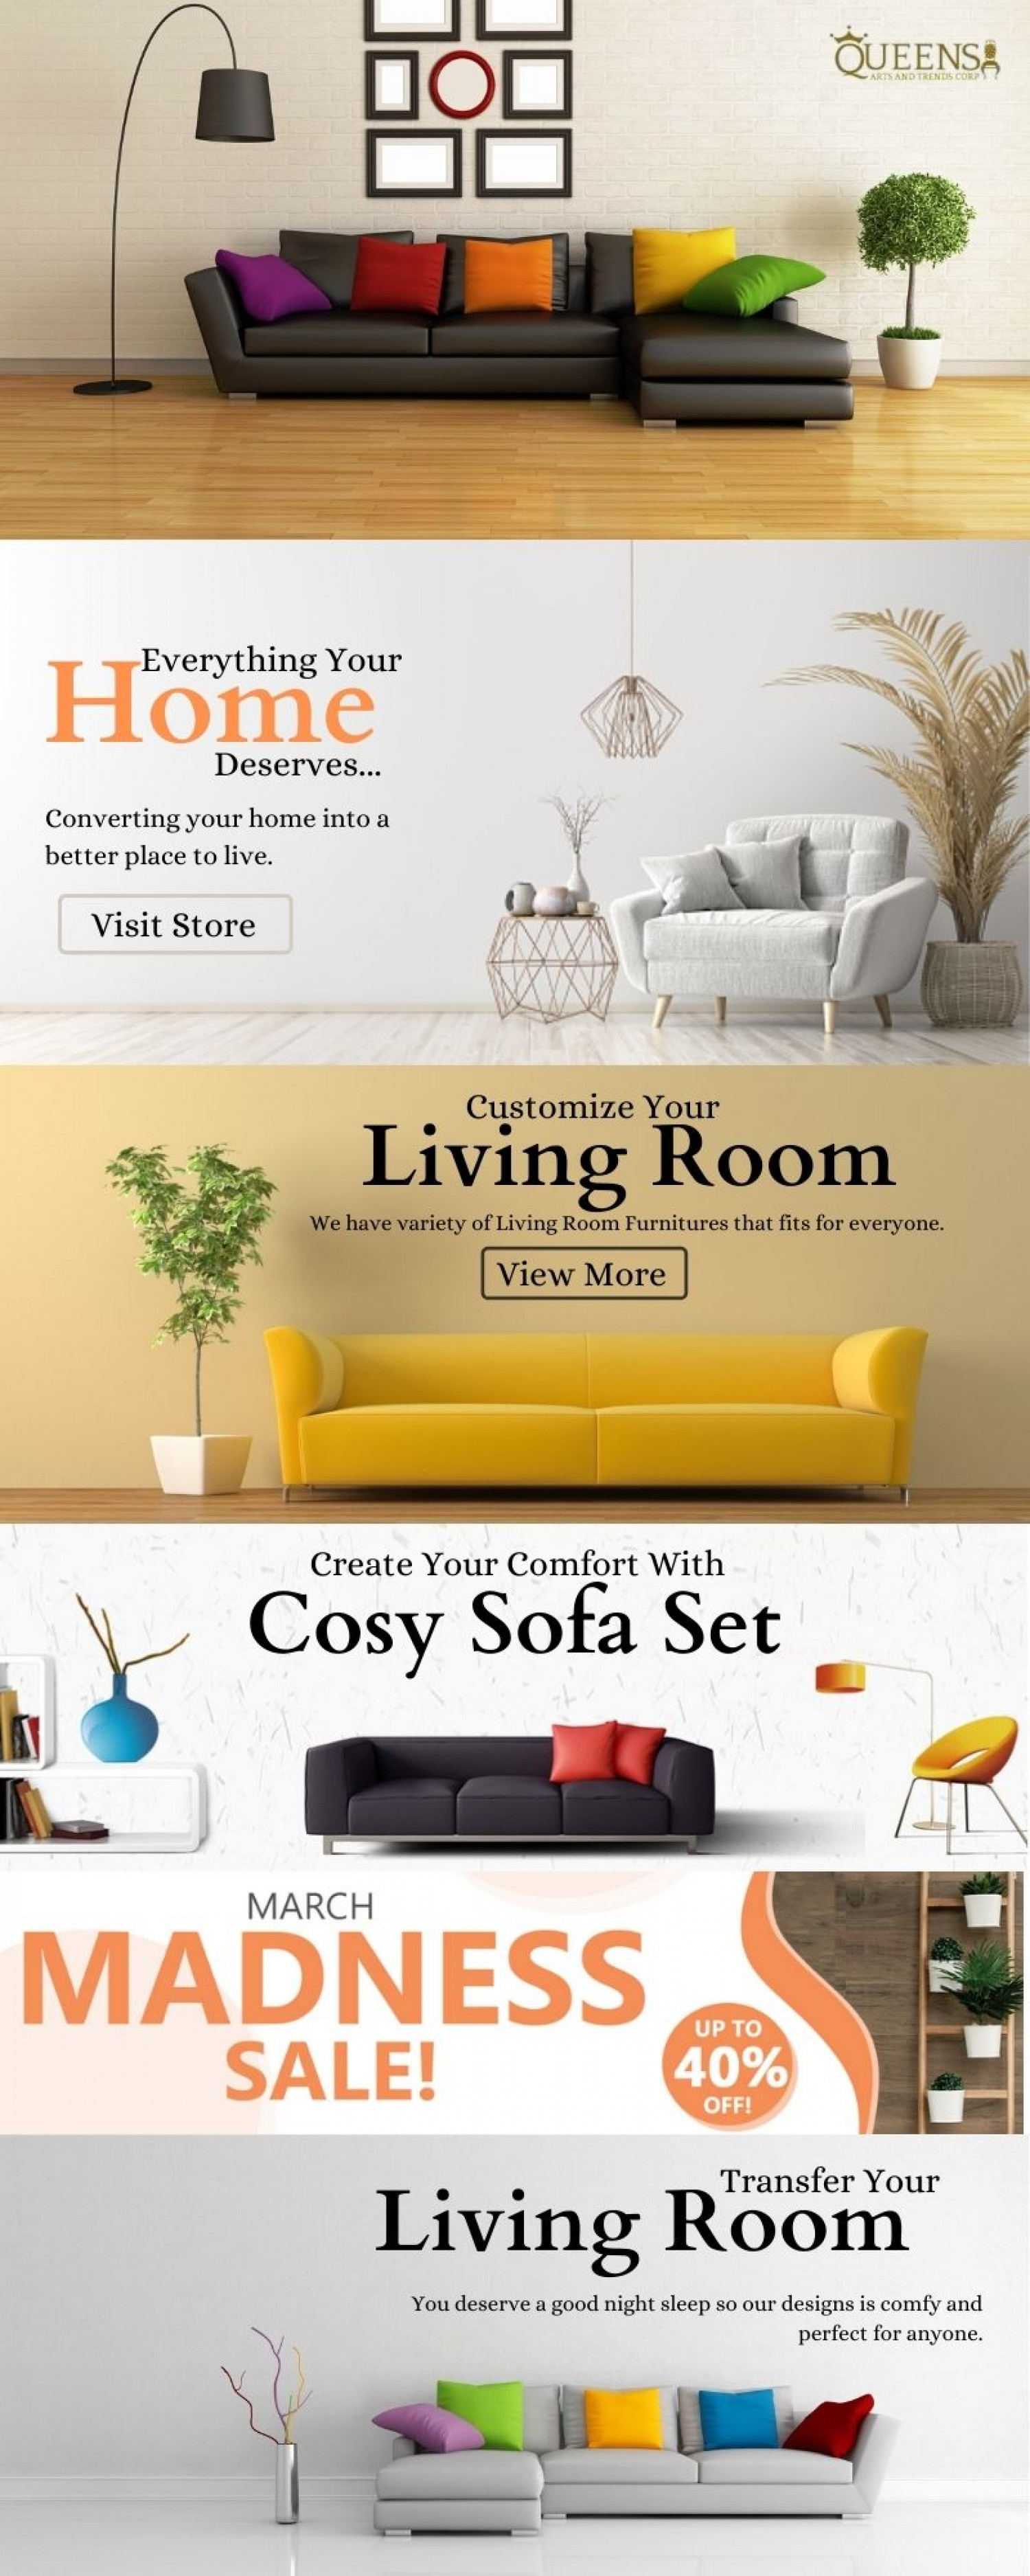 Elevate Your Living Room Infographic